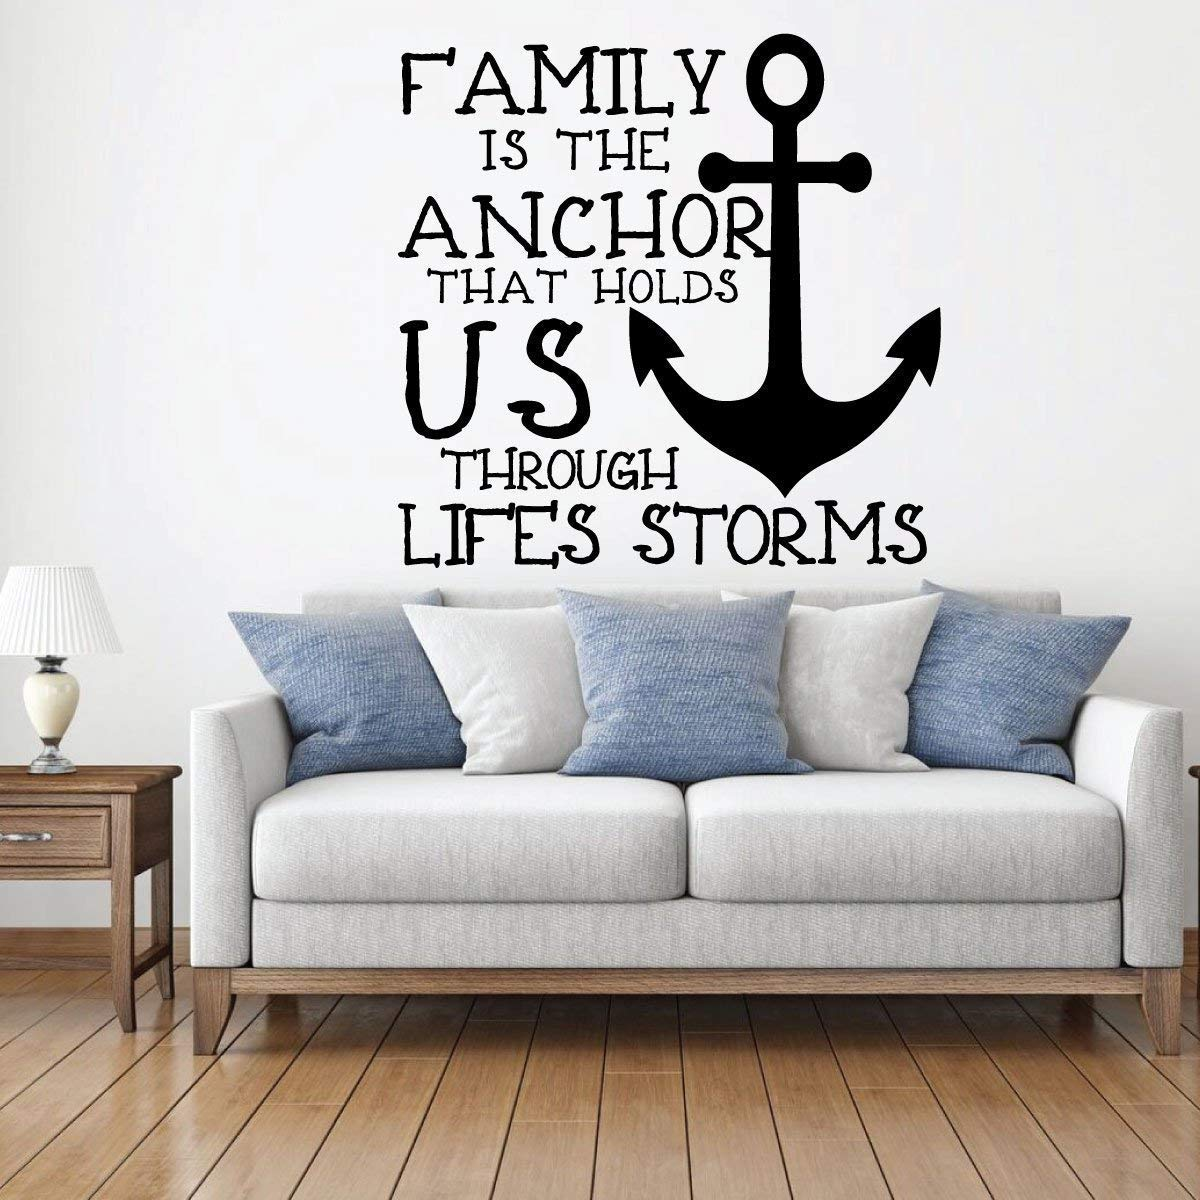 Anchor Wall Decal - Family Is The Anchor That Hold US - Vinyl Home Decoration for Living Room, Home Decor or Playroom